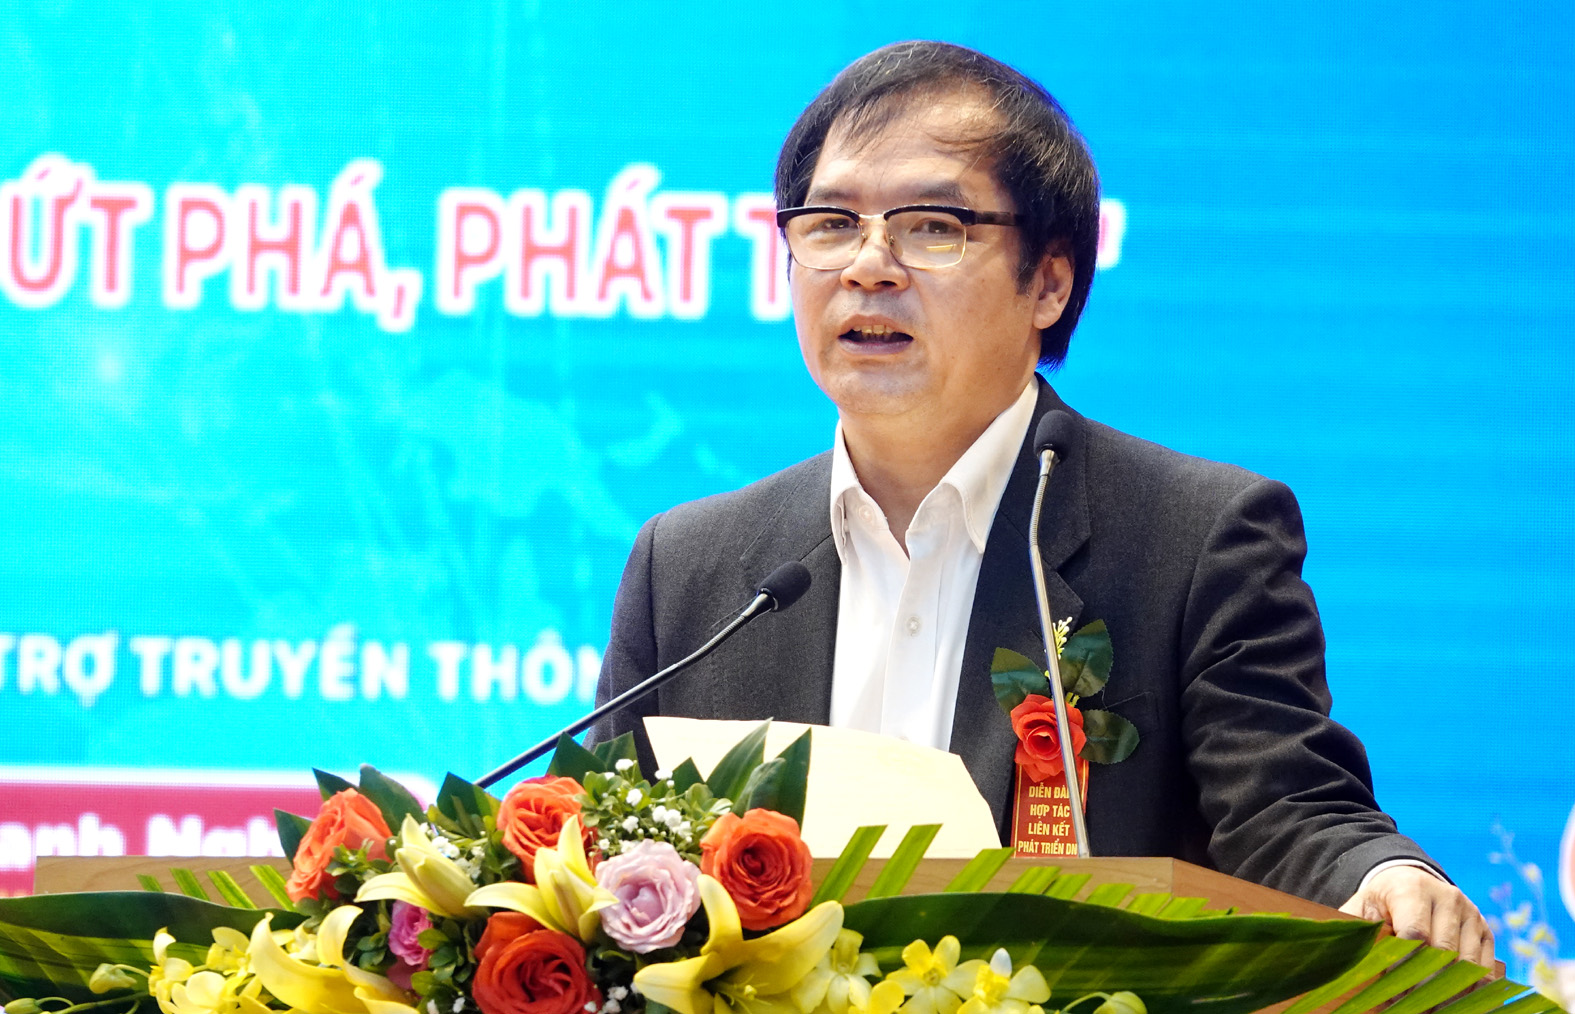 Dr. To Hoai Nam - Vice Chairman of VINASME speaks at the Forum.